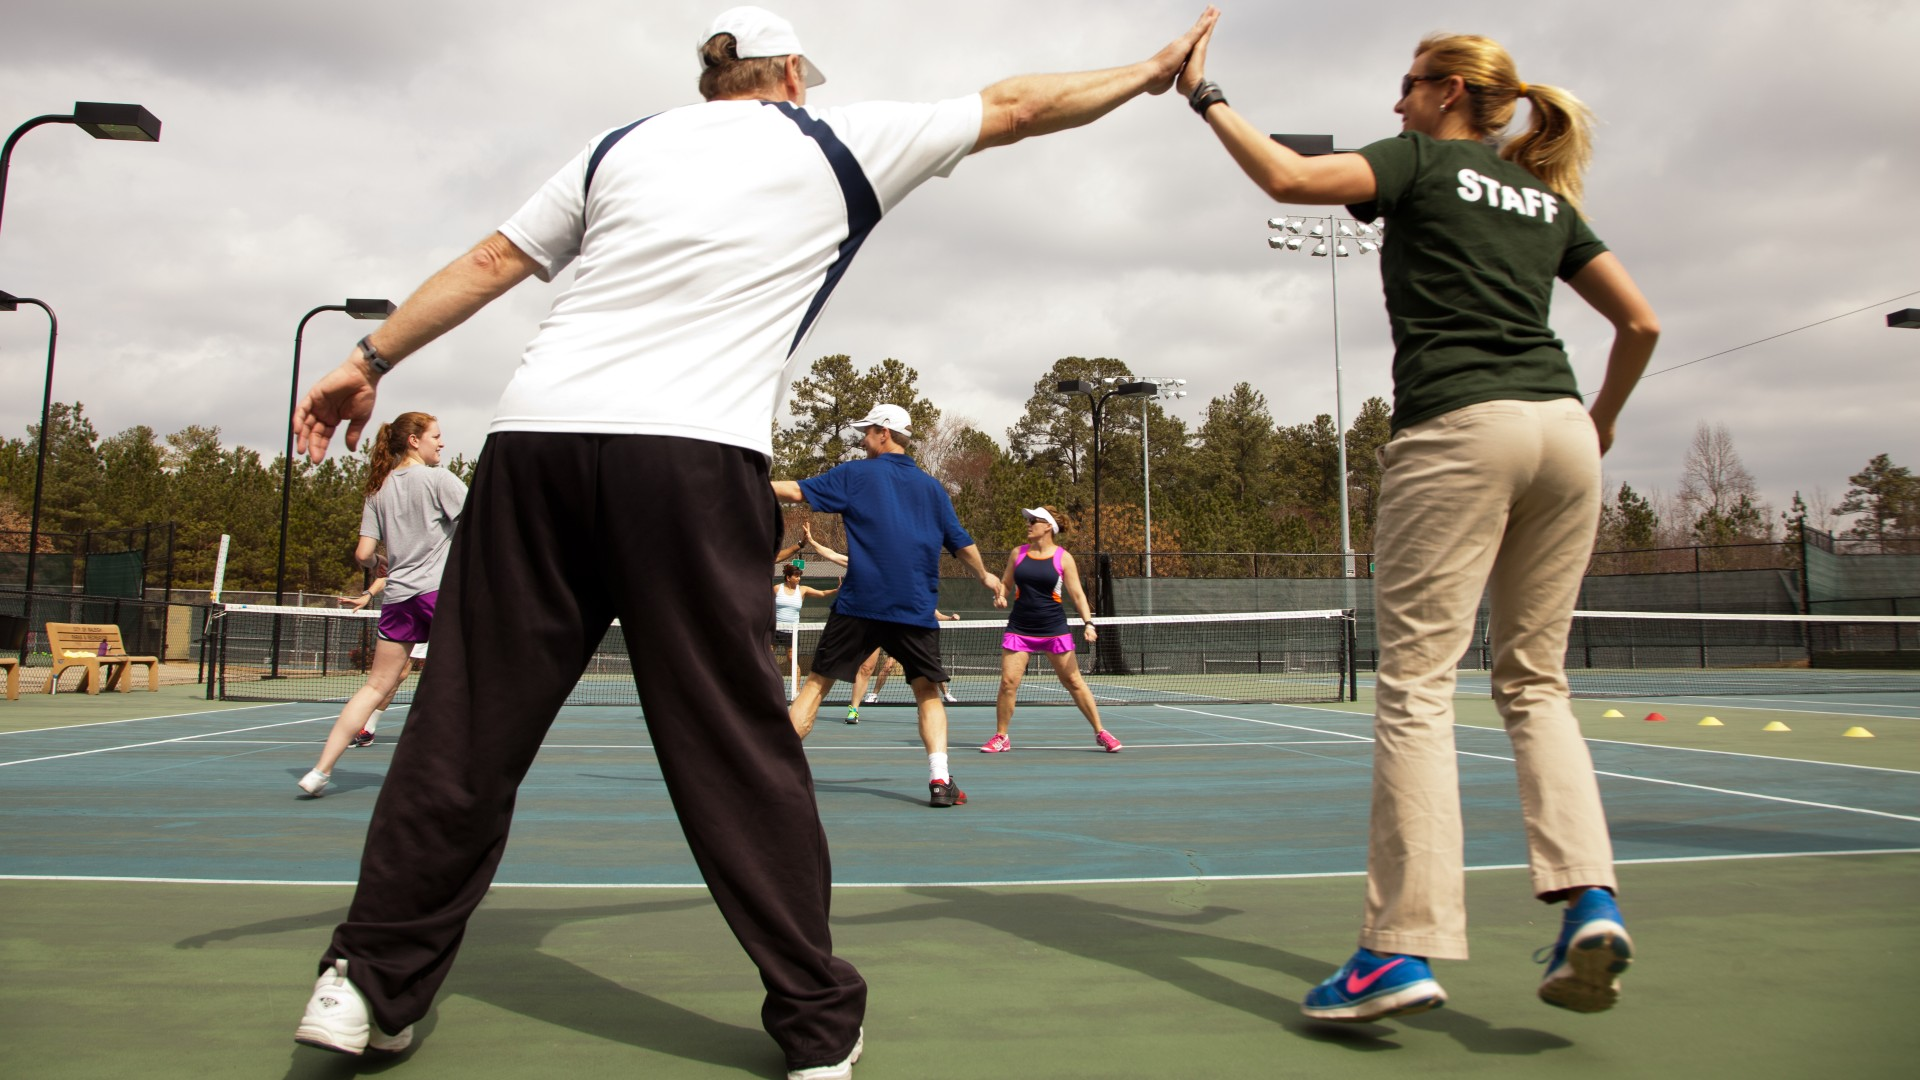 Adults participating in adult cardio on tennis courts